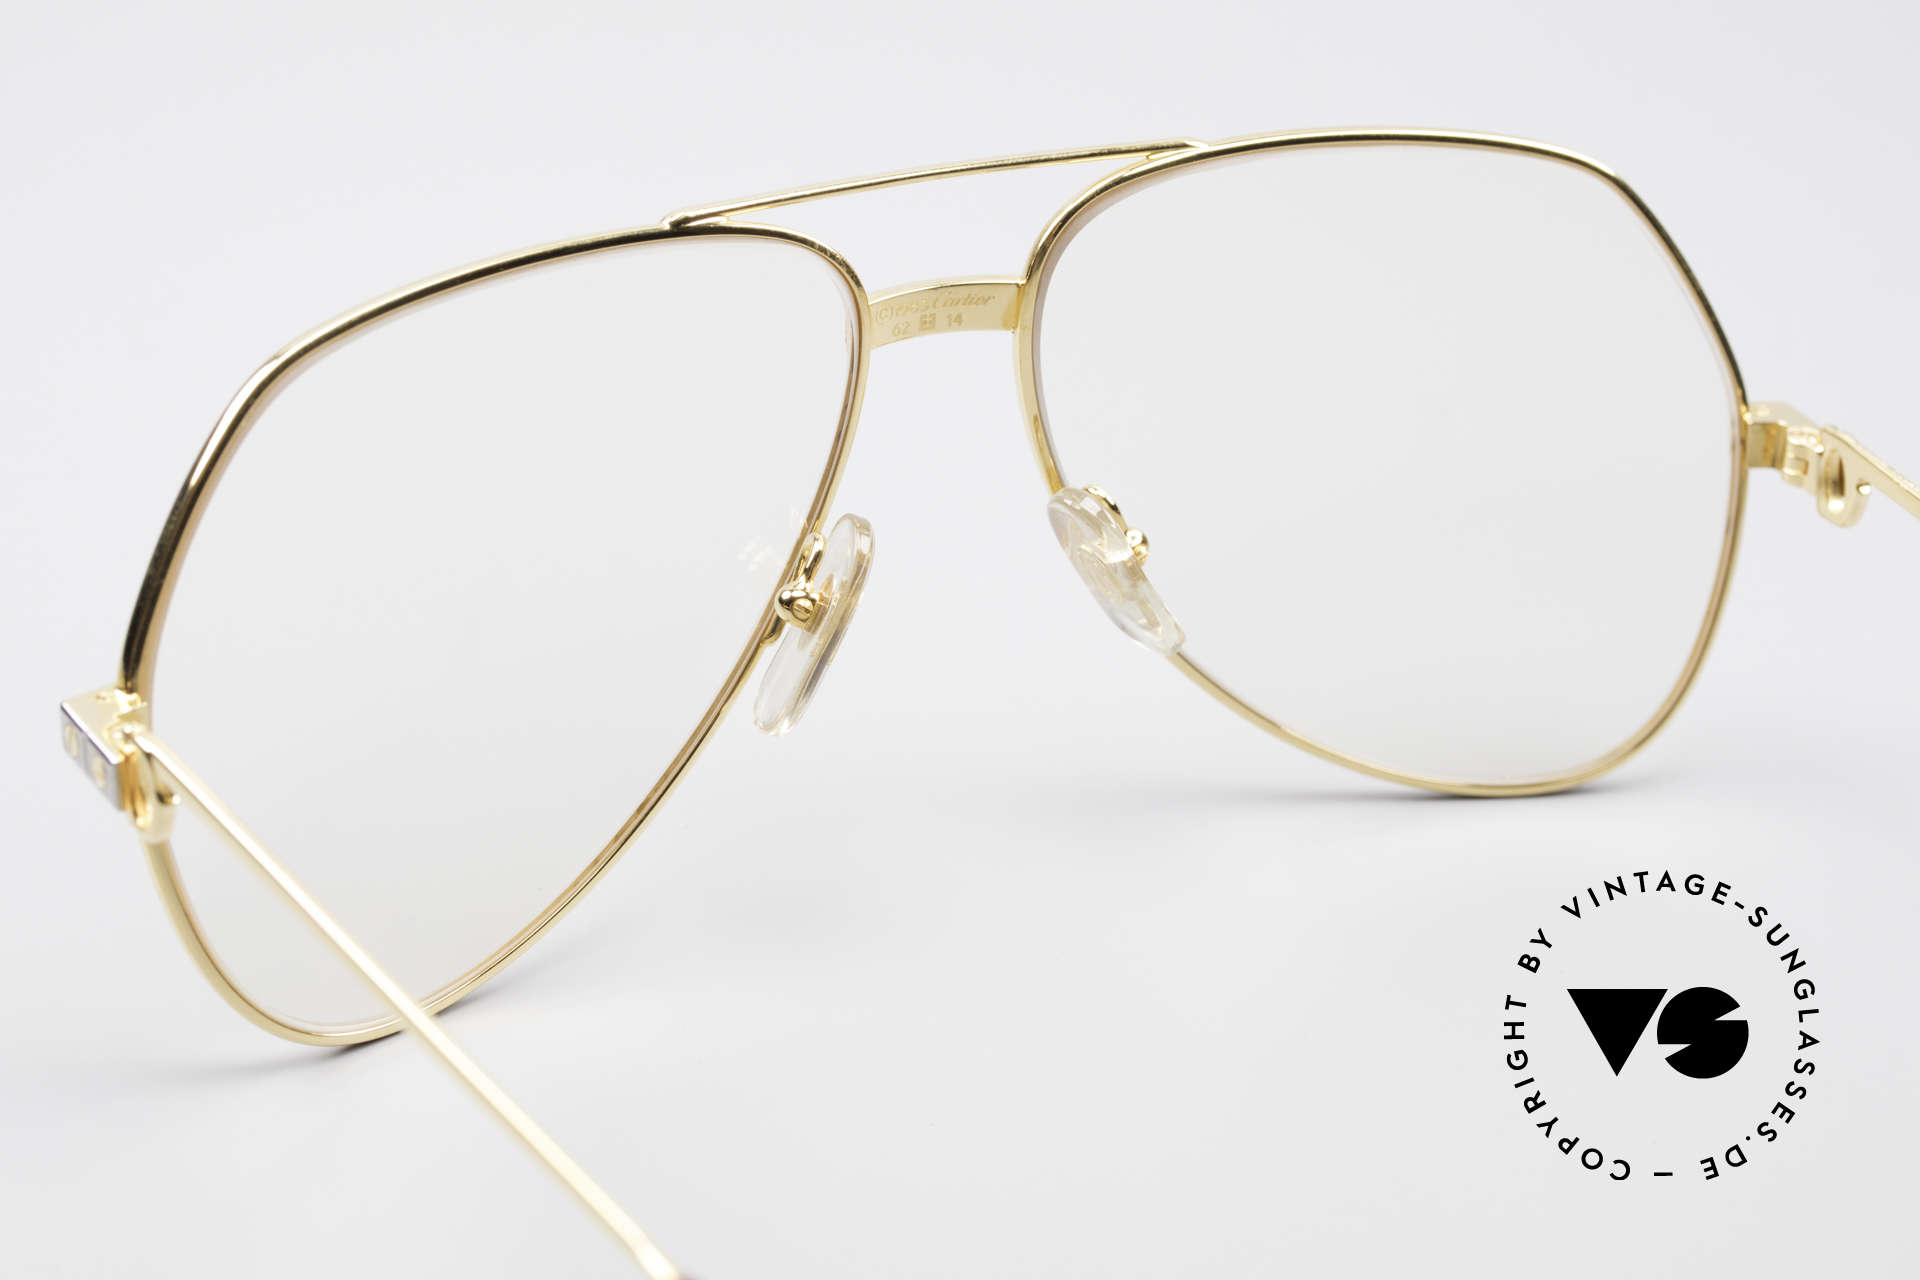 Cartier Vendome Santos - L Changeable Cartier Lenses, worn by actor Christopher Walken (JAMES BOND, 1985), Made for Men